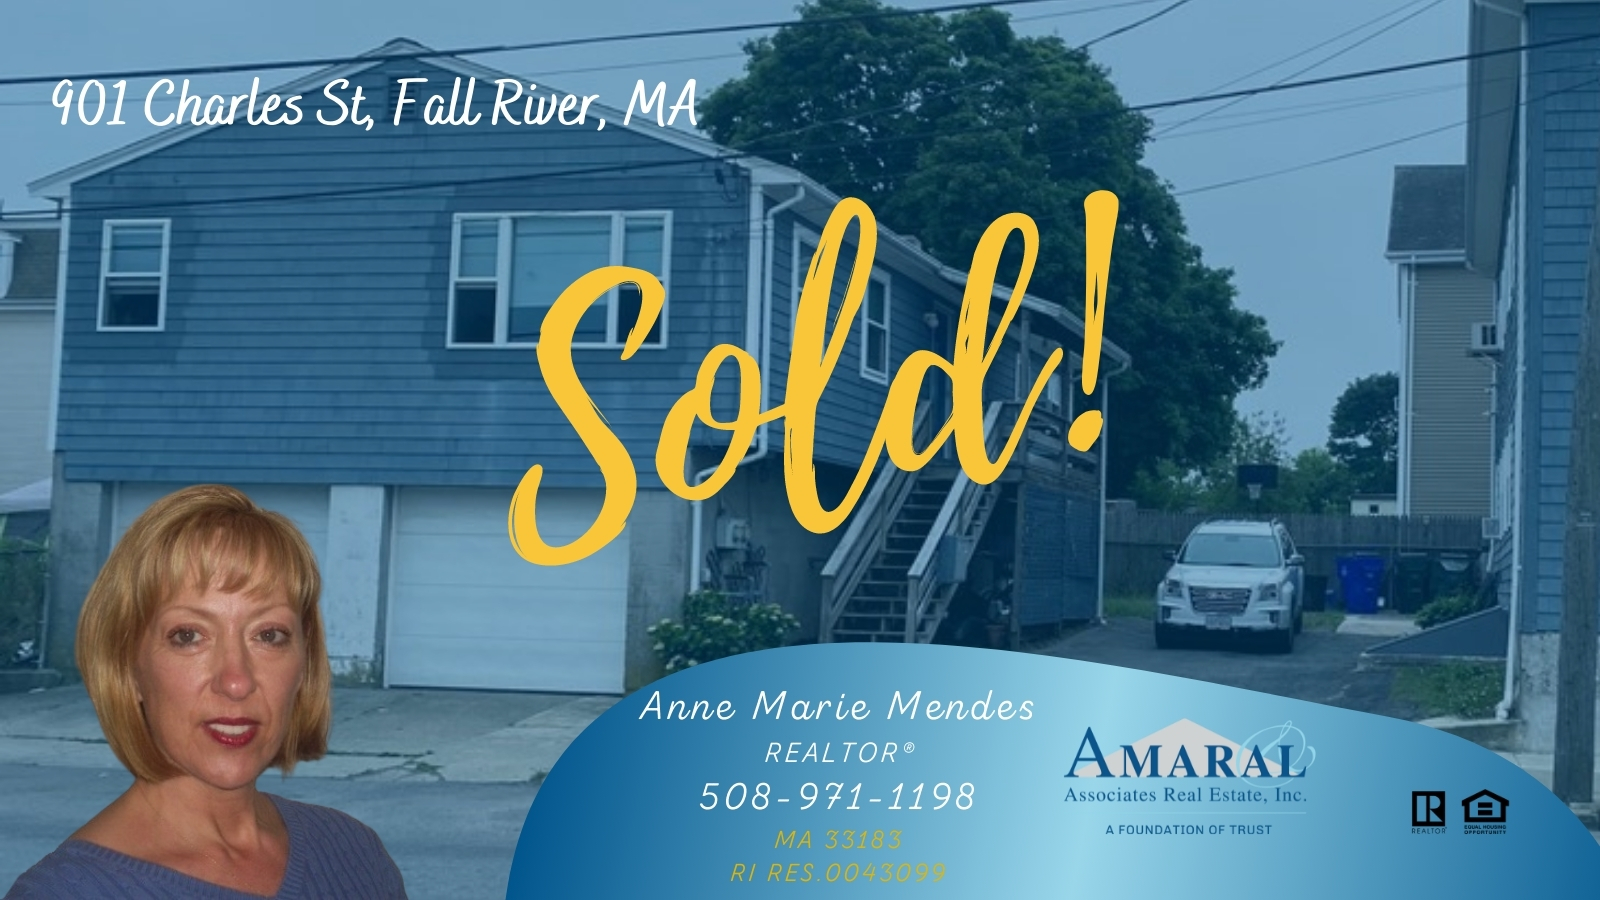 SOLD with Anne Marie Mendes! 901 Charles St, Fall River, MA